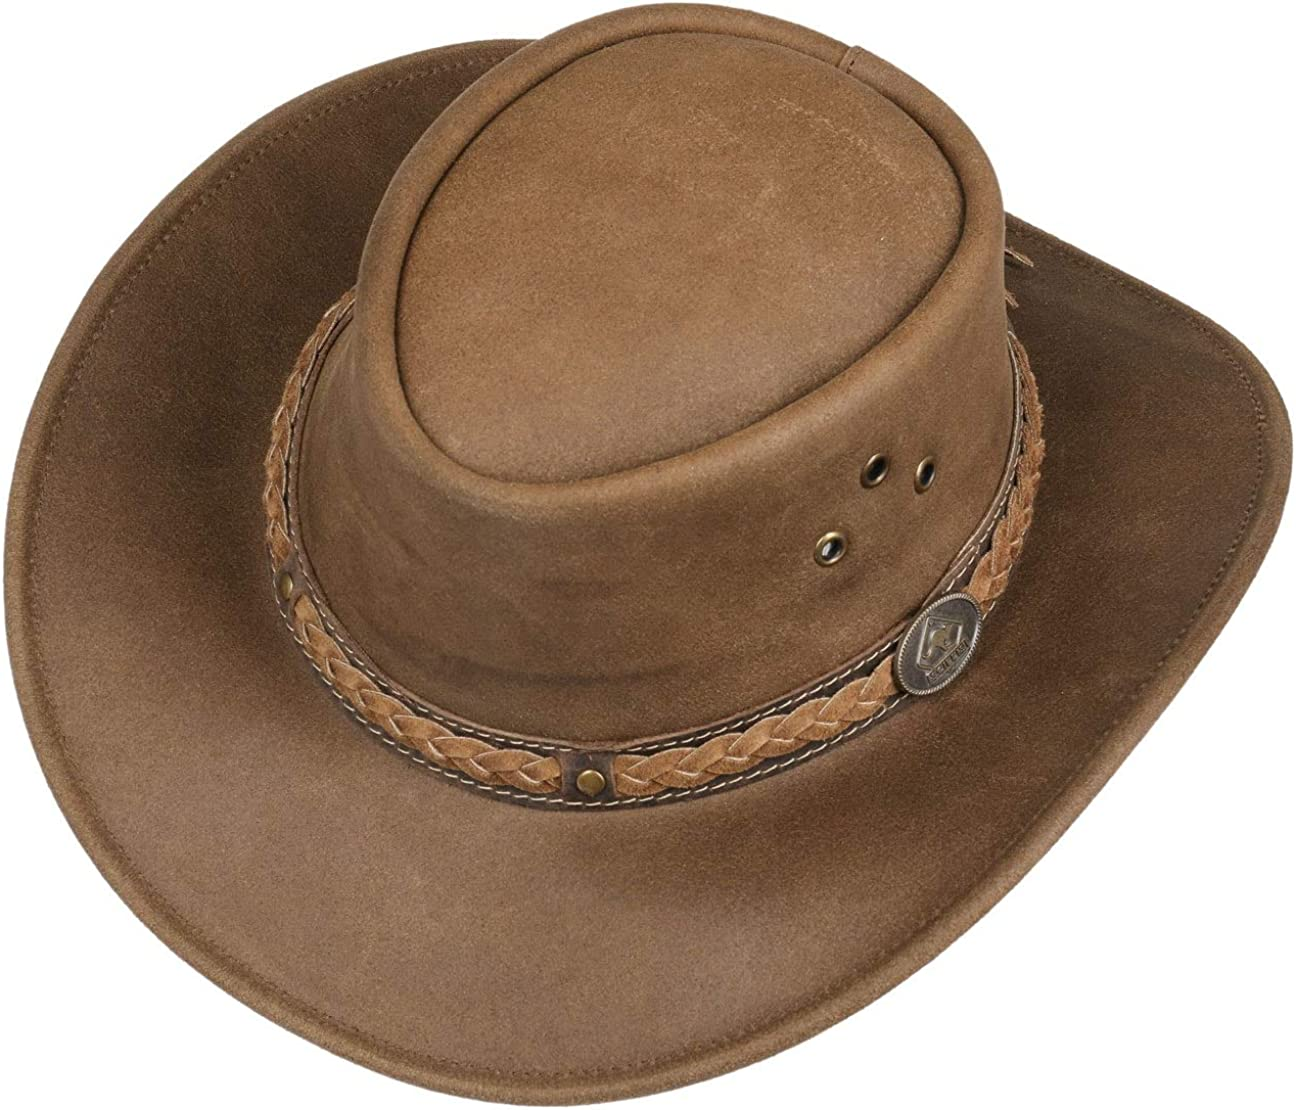 Scippis Cappello in Pelle Townsville da Cowboy Outback